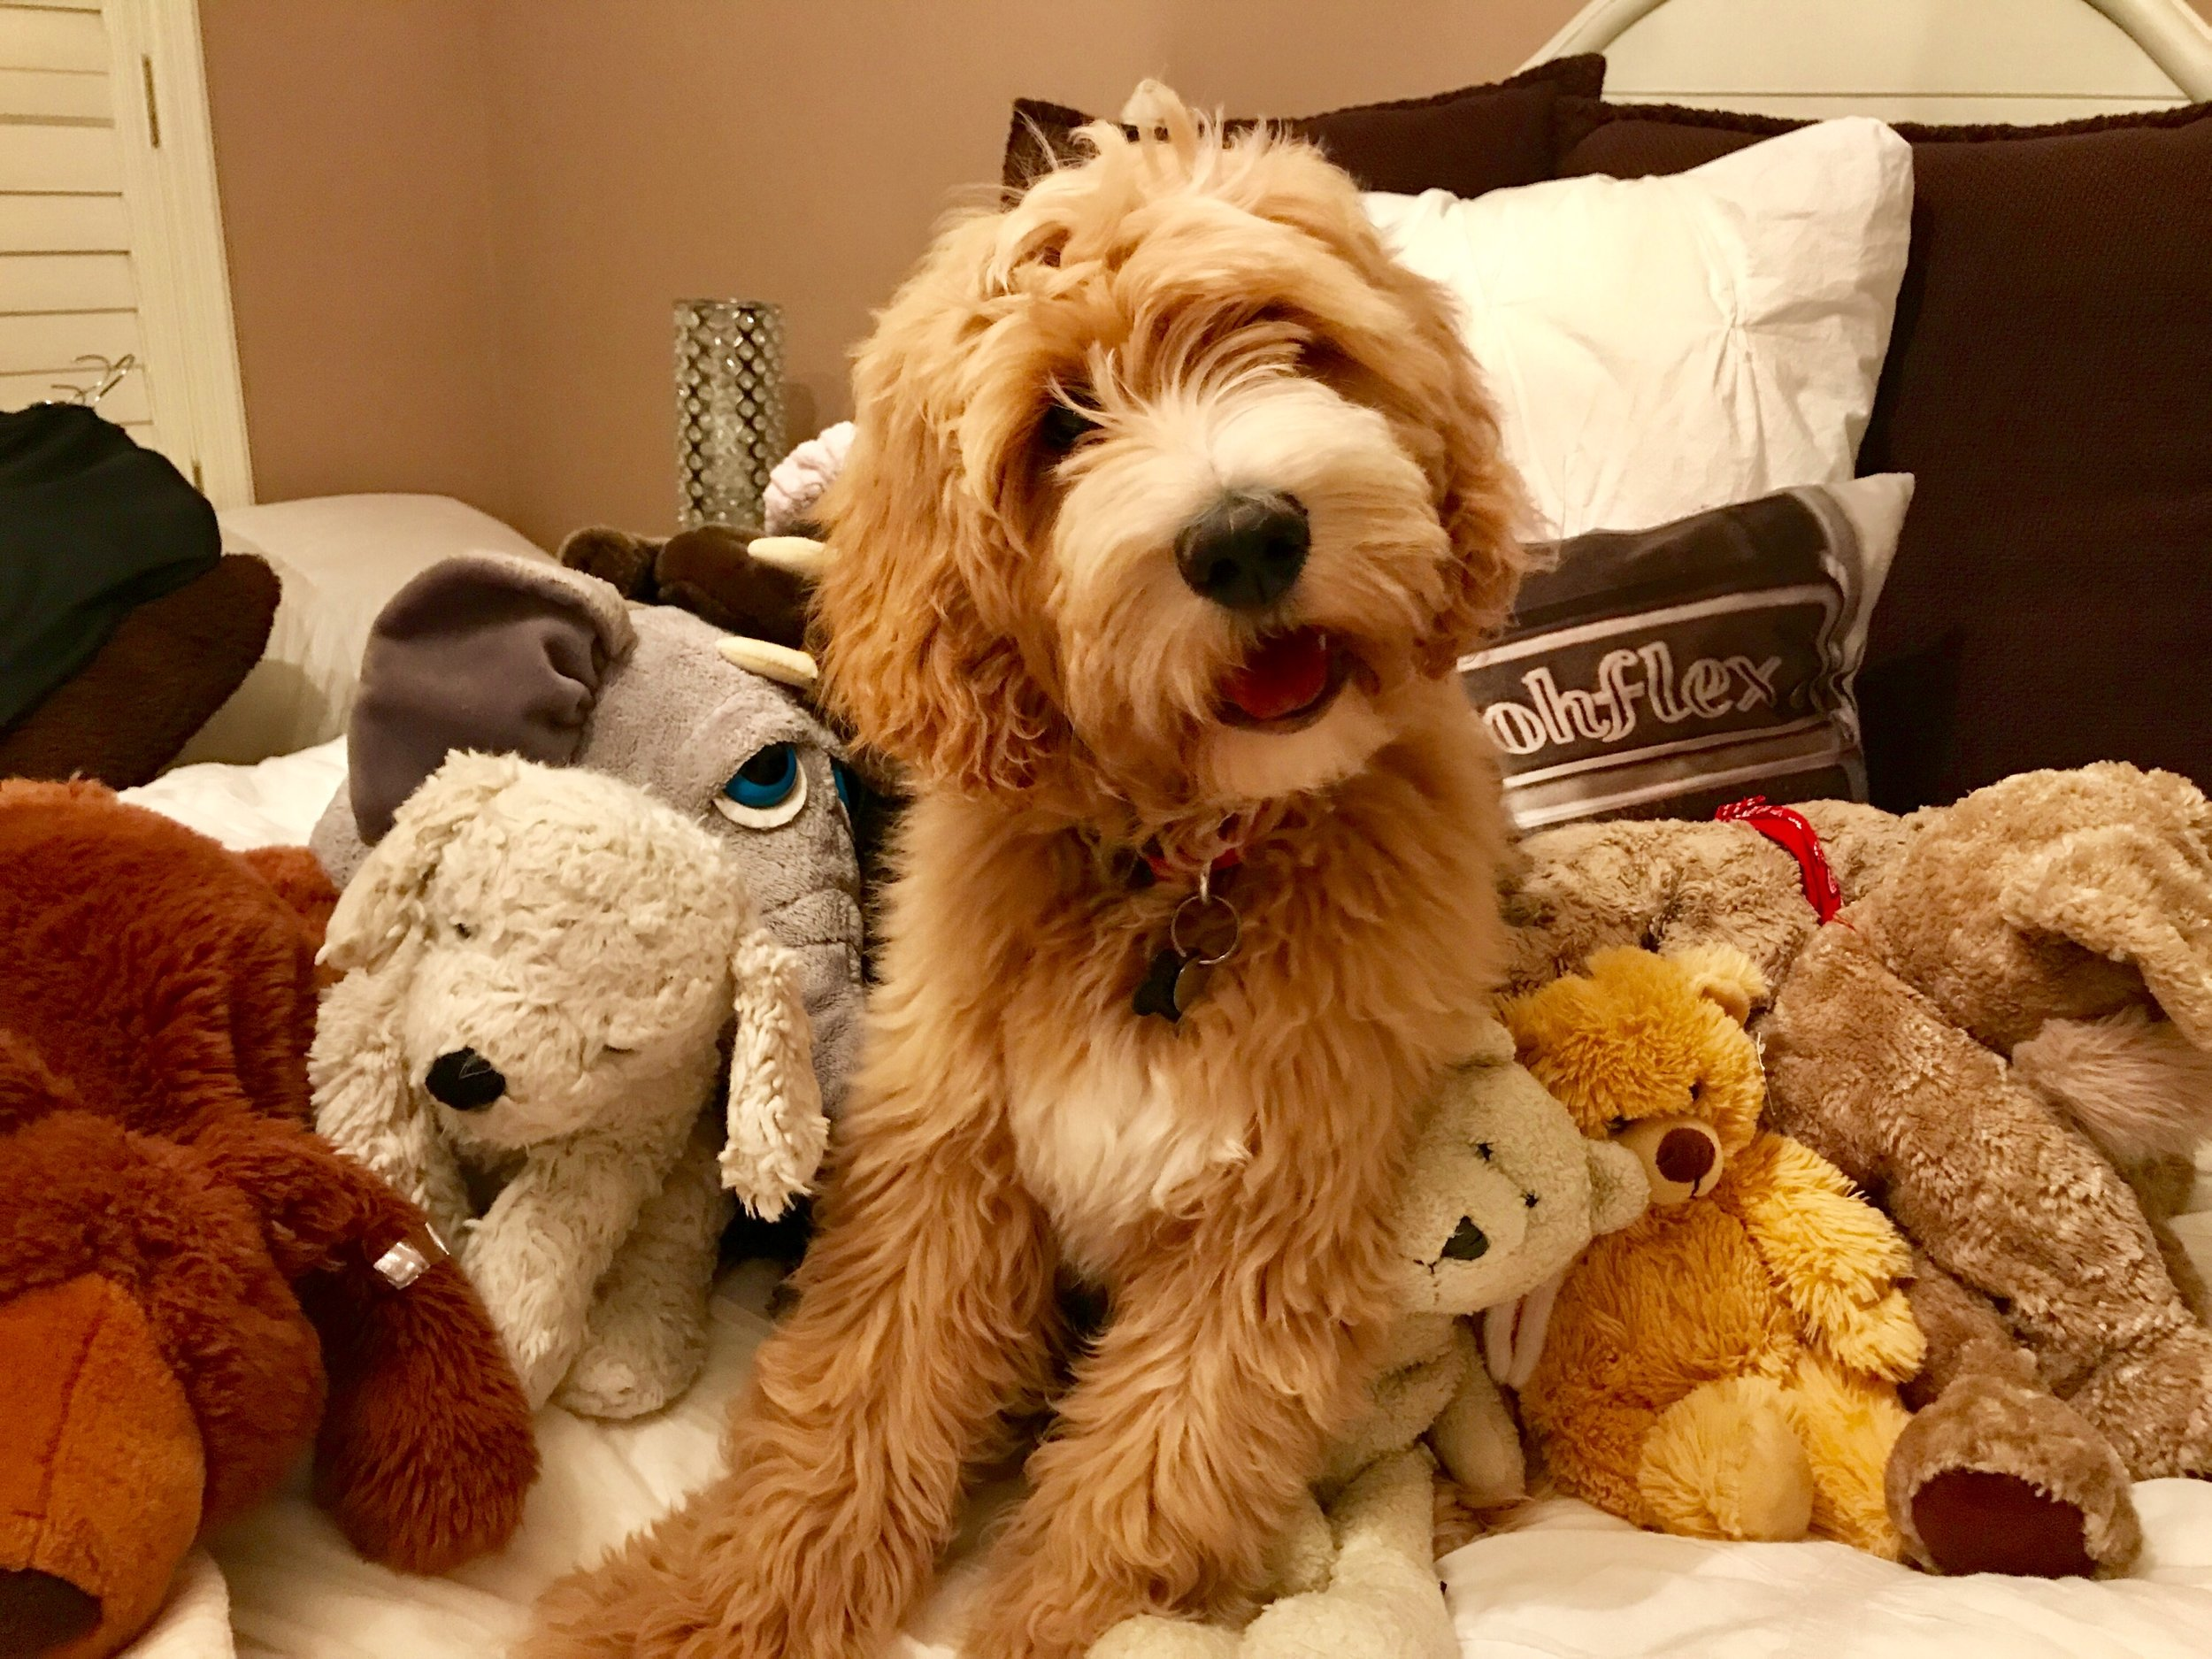 F1 Standard English Goldendoodle puppy